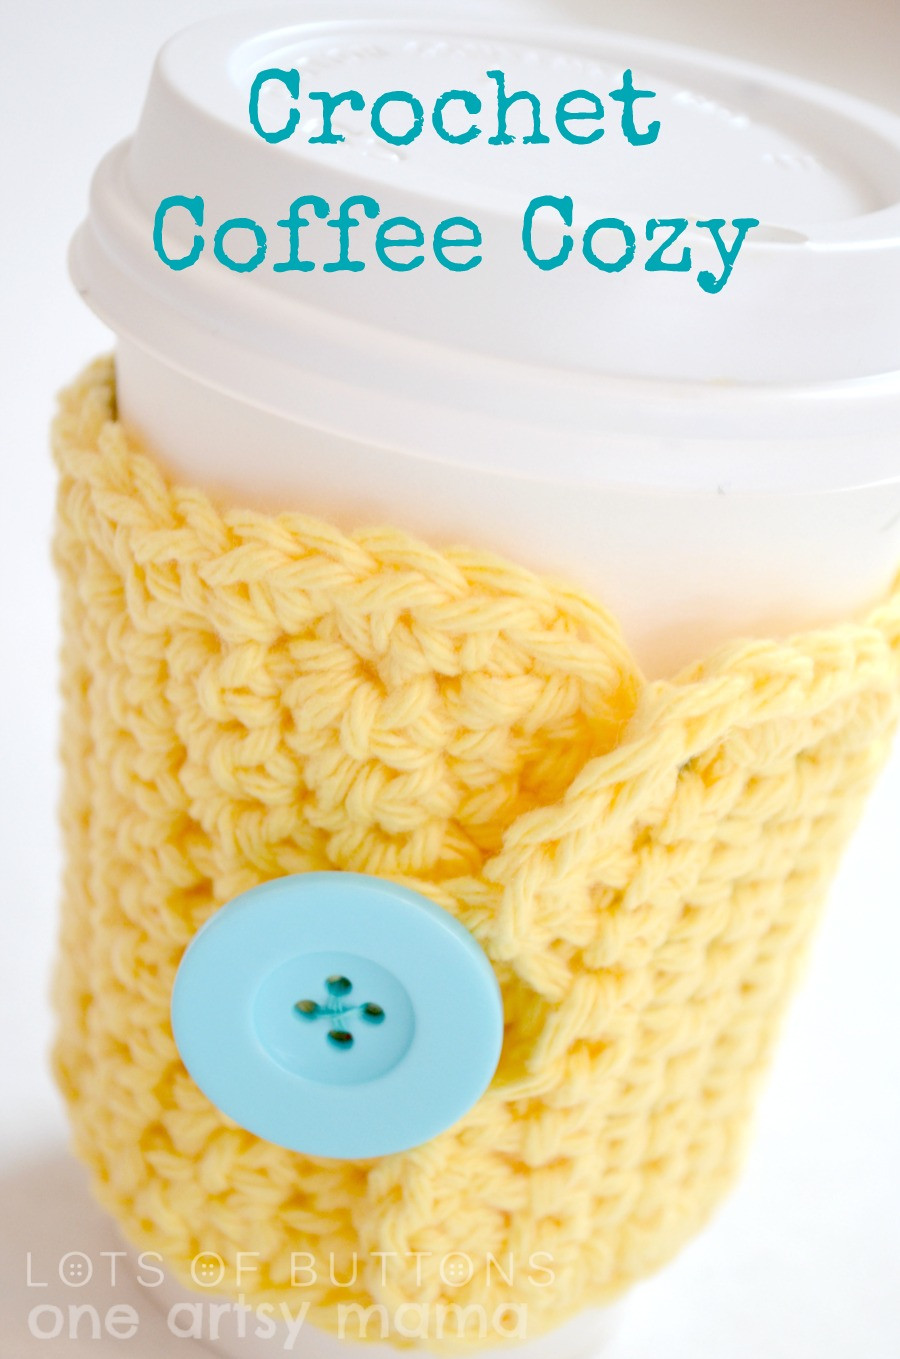 Crochet Coffee Cup Cozy Lovely Crochet Coffee Cozy Amy Latta Creations Of Crochet Coffee Cup Cozy Inspirational Crochet Class Beginning Crochet Sparkleez Crystles